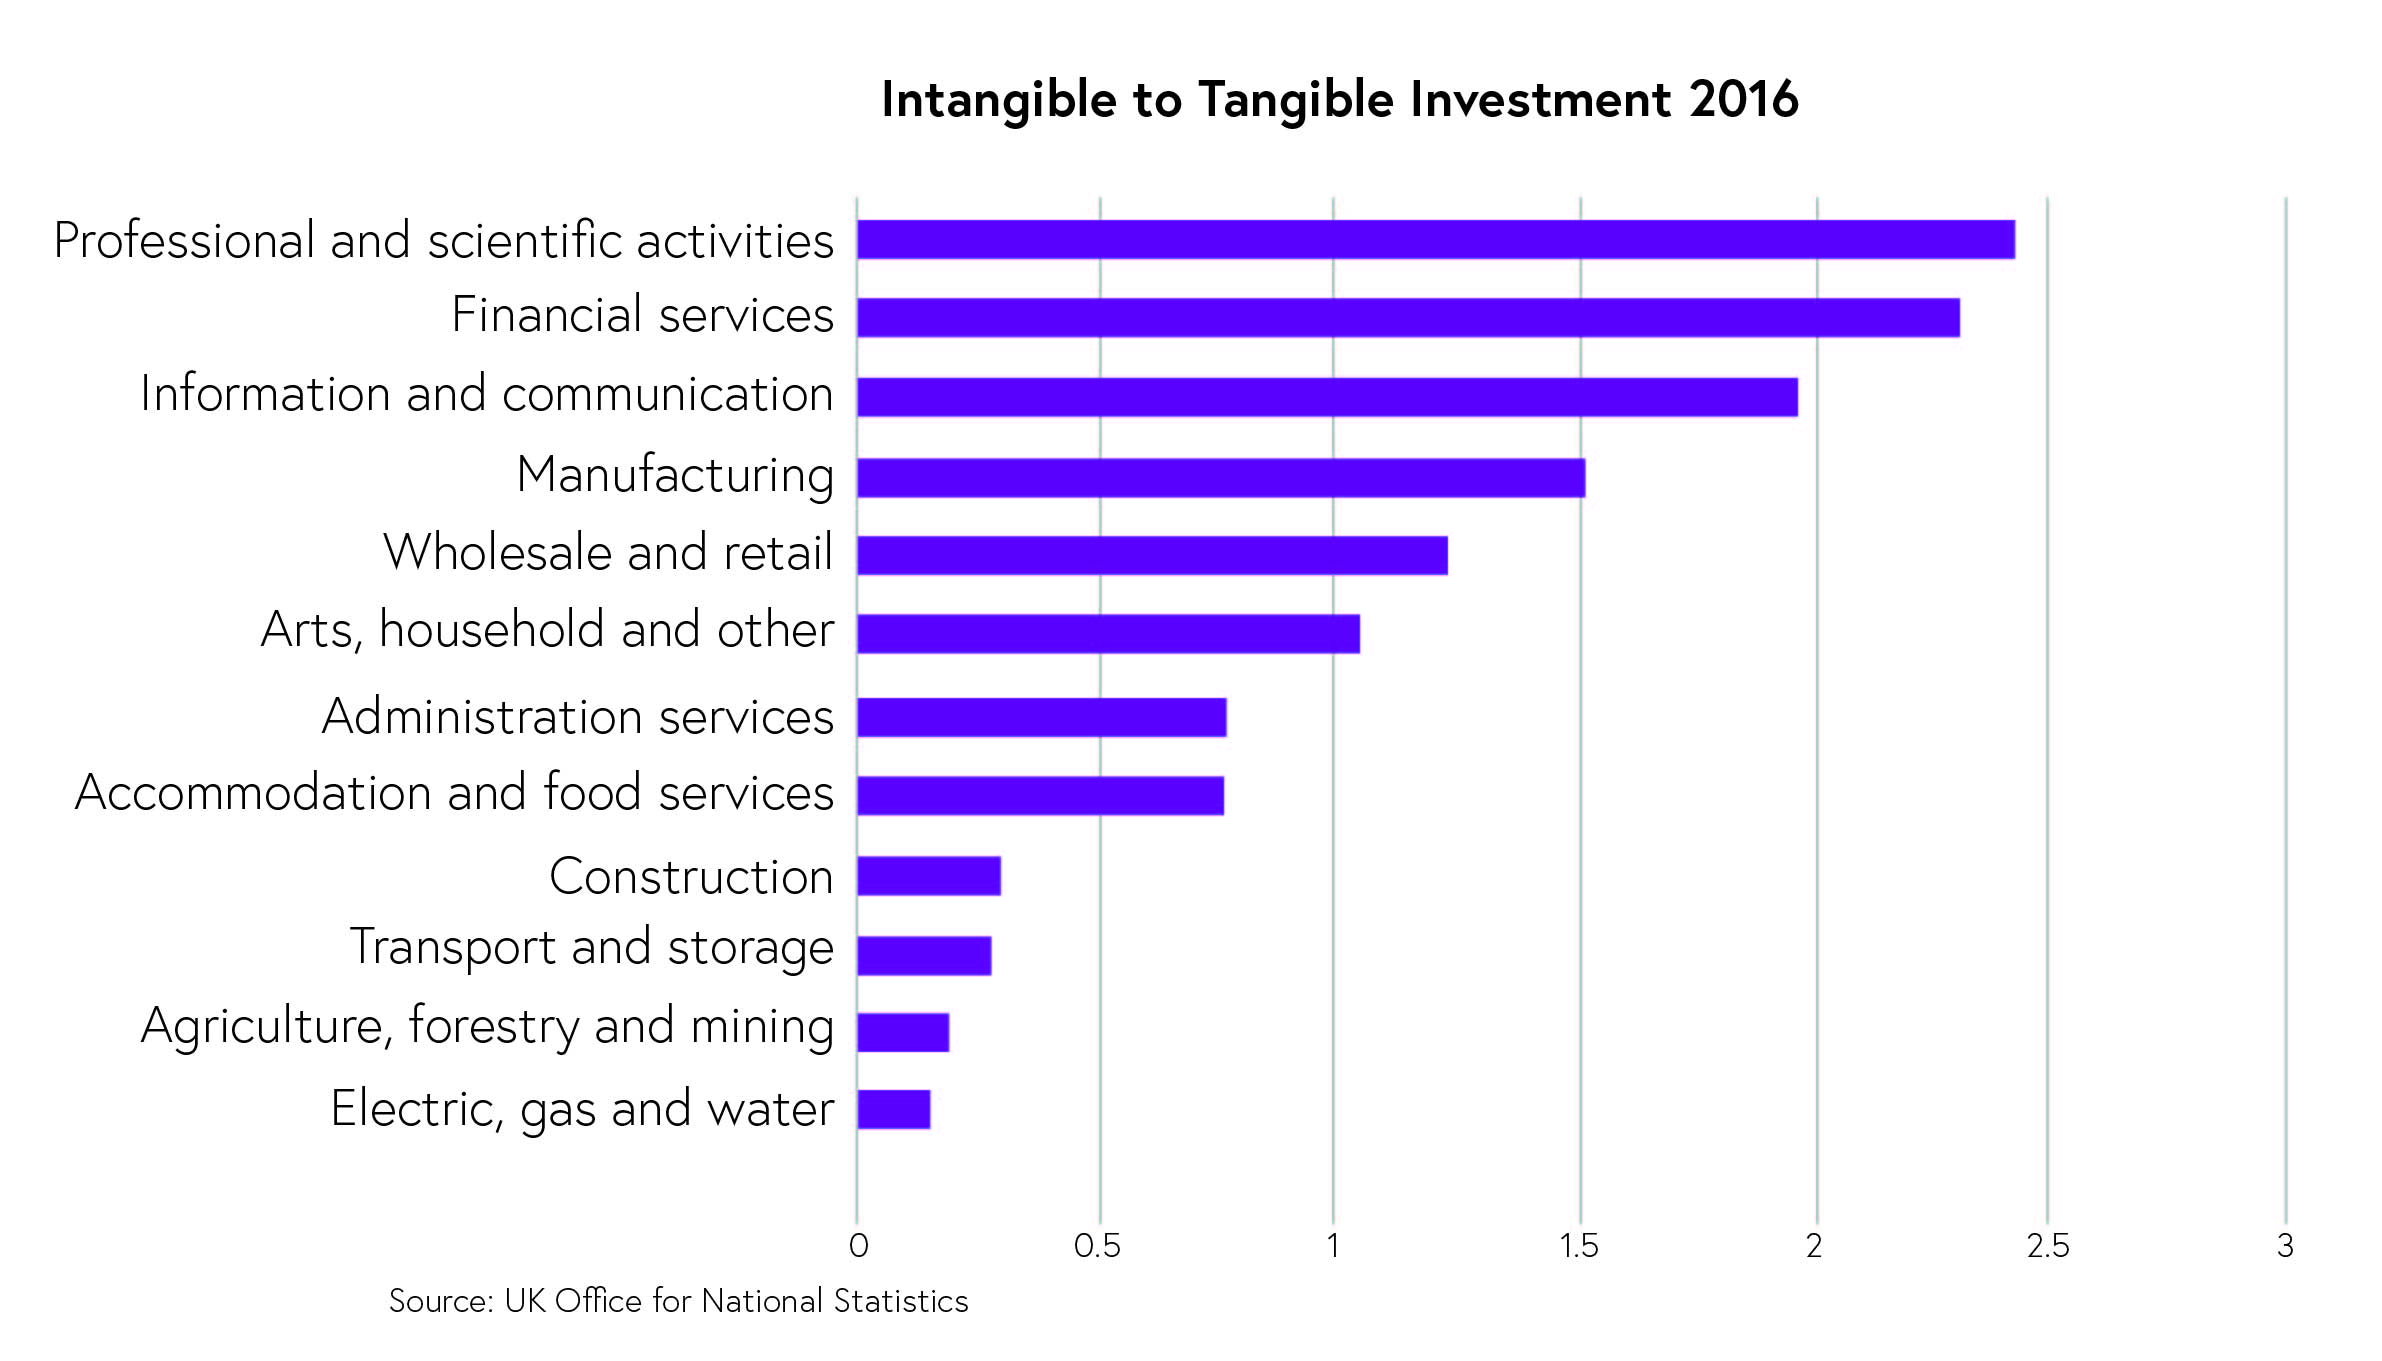 Ratio of Intangible Assets to Tangible Assets by Sector (UK 2014)